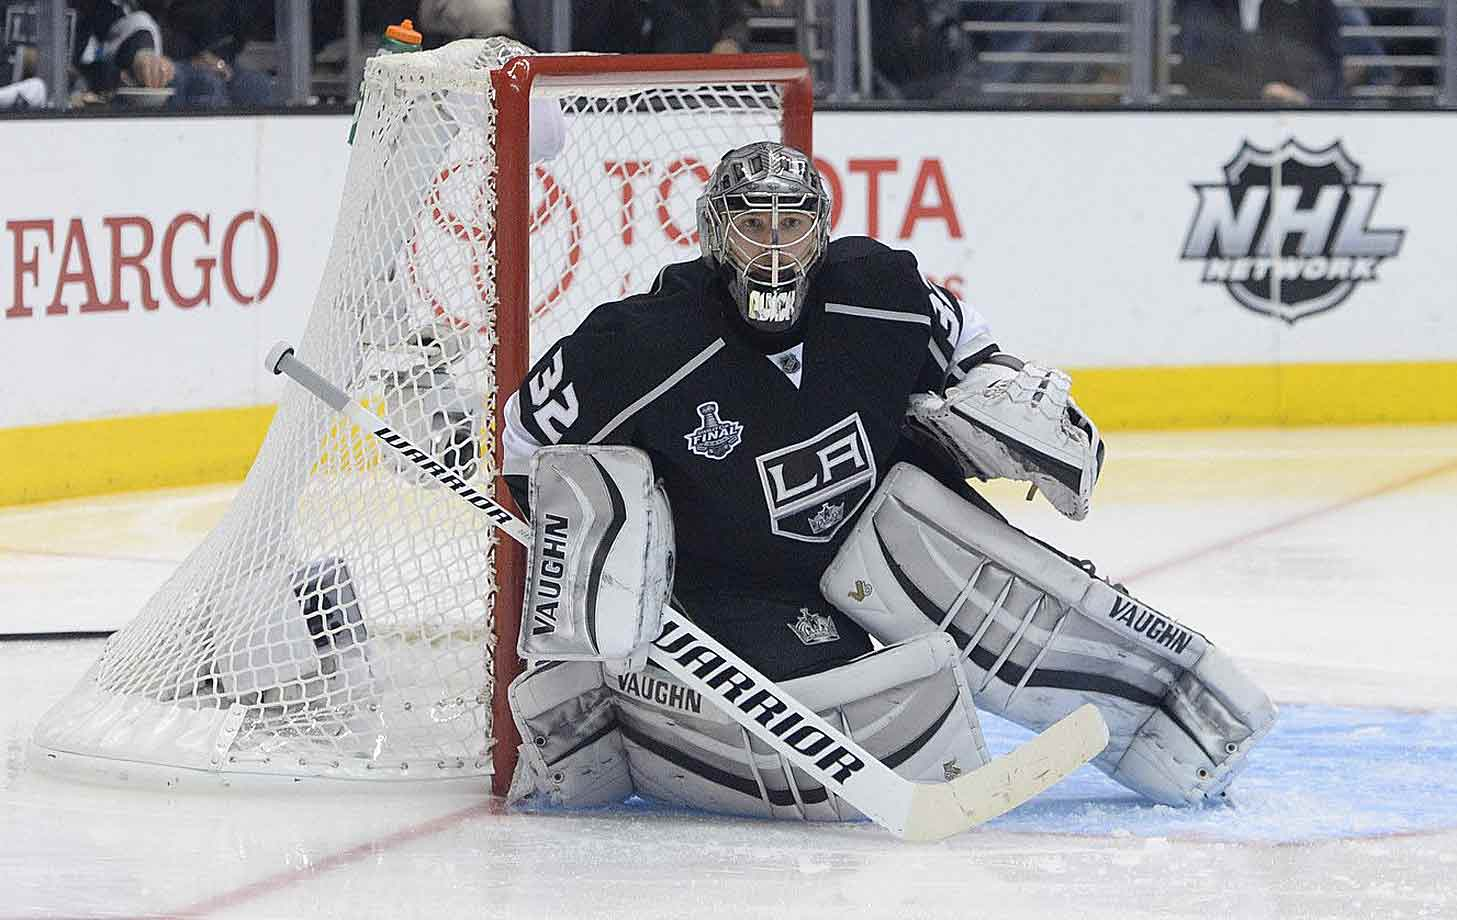 A two-time Stanley Cup champ and Conn Smythe Trophy winner in 2012, Quick has emerged as one of the stingiest goalies in the game. Despite weighing 220 pounds, he is so flexible and capable of covering the entire lower portion of the net that his teammates took to calling him Gumby. His combined marks in the 2012 and 2013 playoffs (.940; 1.63 over 38 games) are astounding.